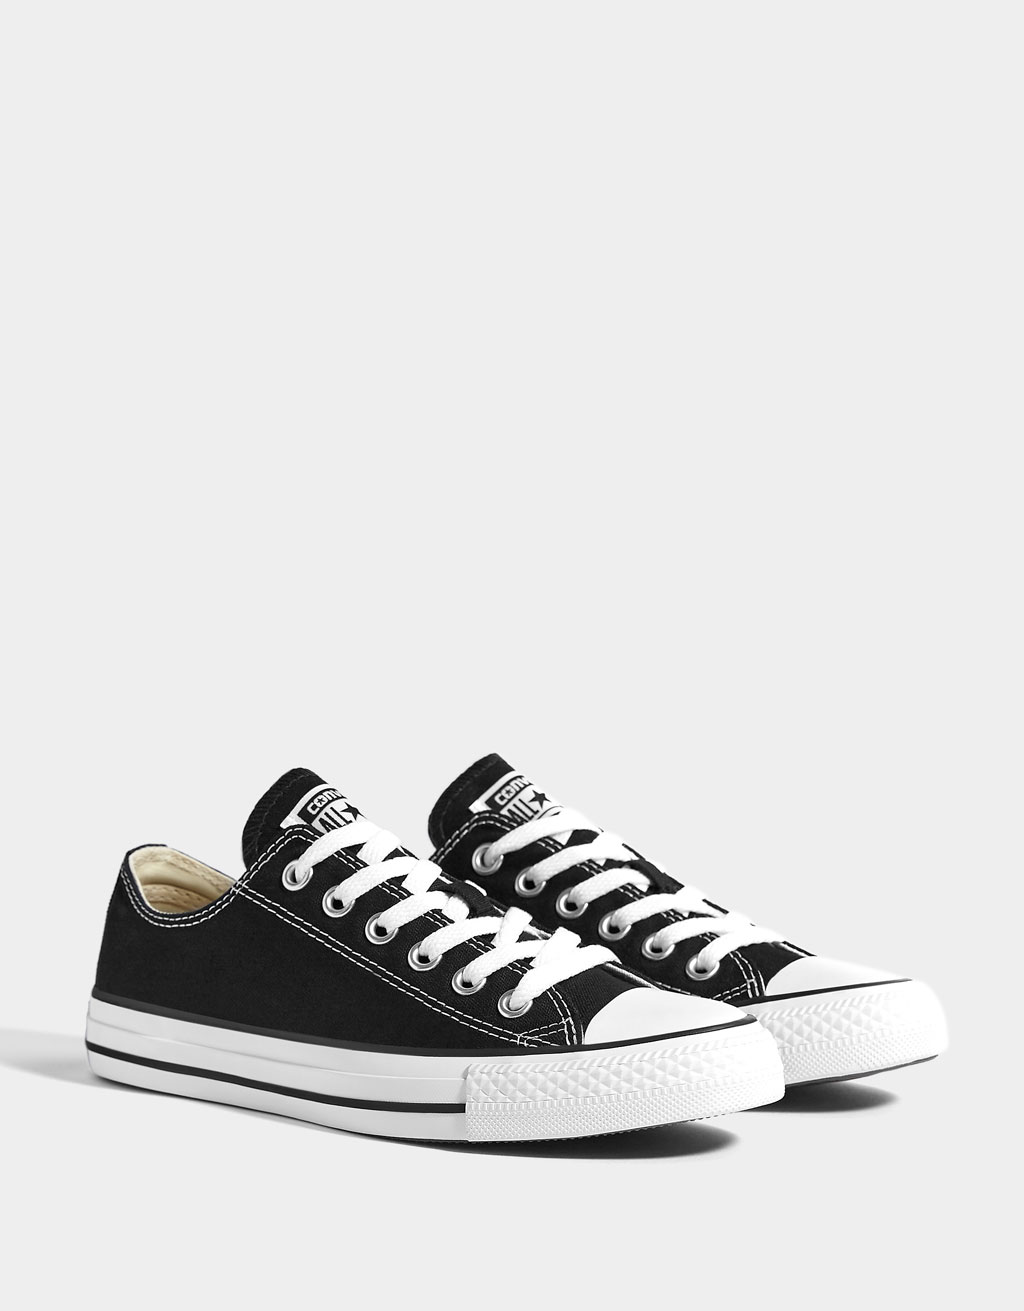 Riidest tennised CONVERSE CHUCK TAYLOR ALL ⋆ STAR